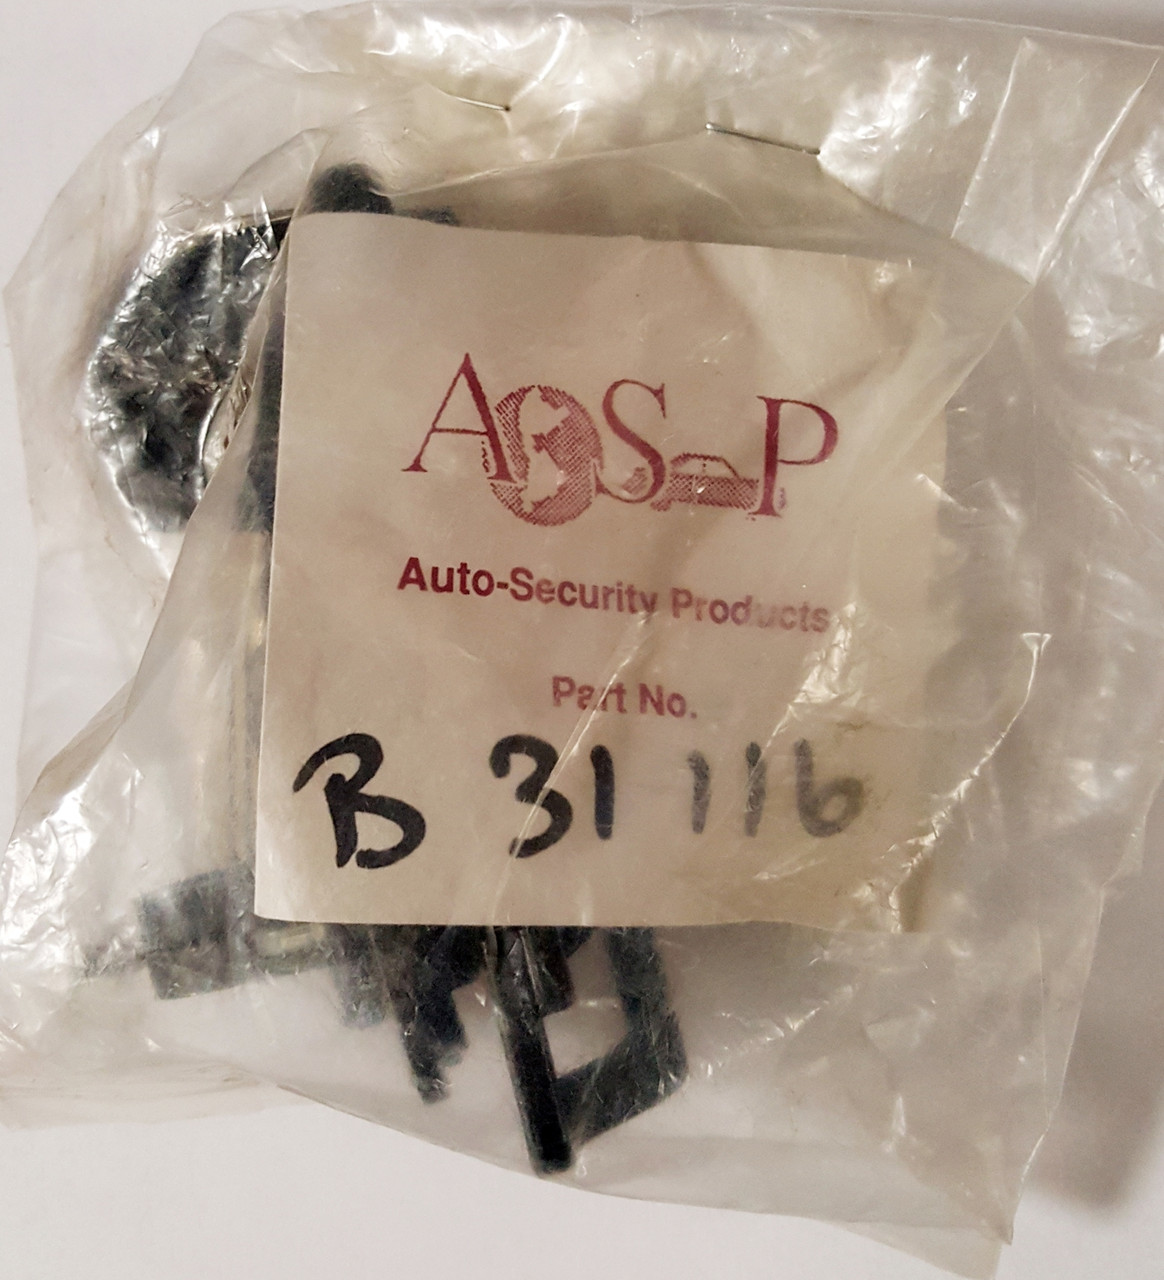 ASP Volkswagen Rear Trunk Lock B-31-116